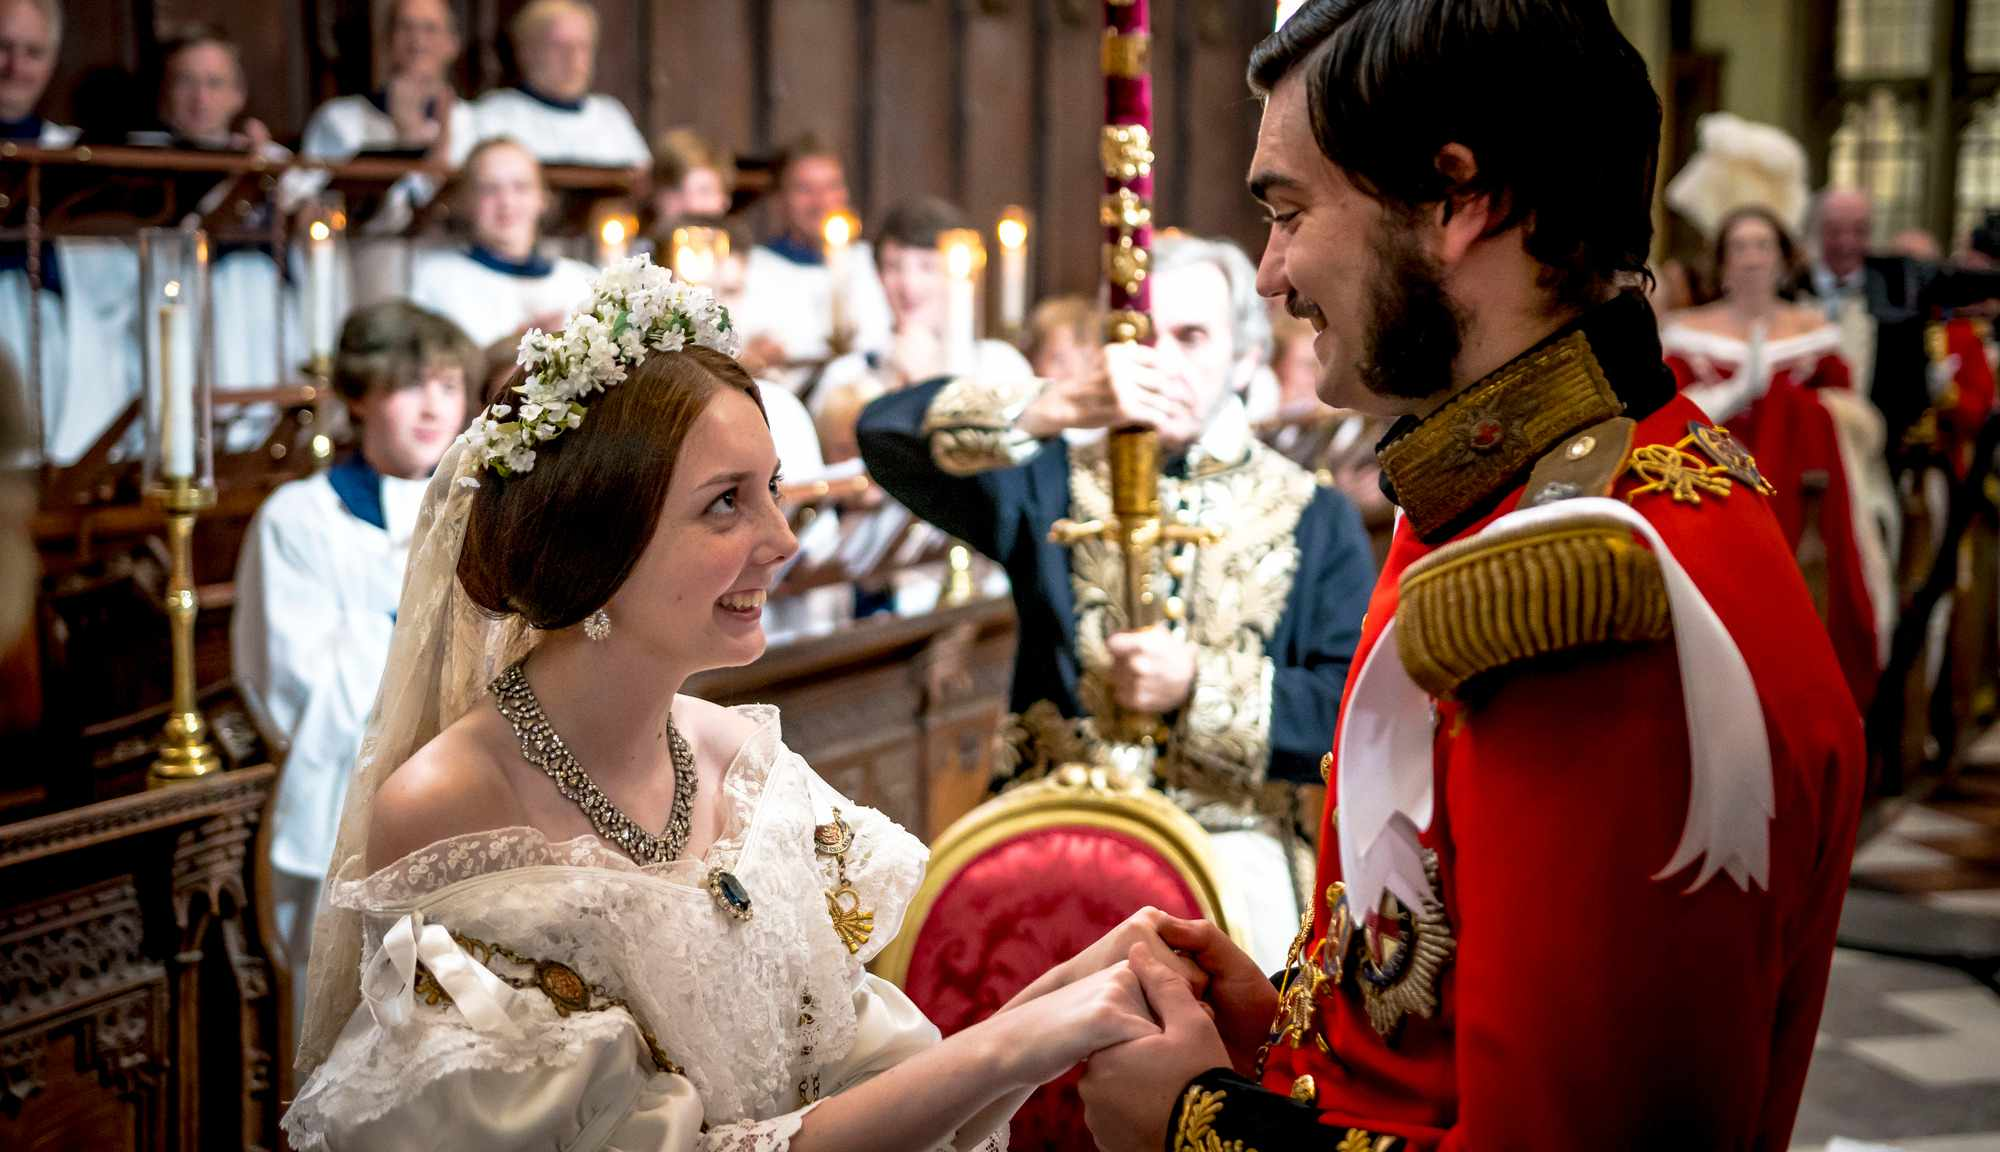 In December 2018, the BBC's 'Victoria and Albert: The Royal Wedding' will restage the wedding of Queen Victoria and her beloved Prince Albert. (Image Credit: BBC)